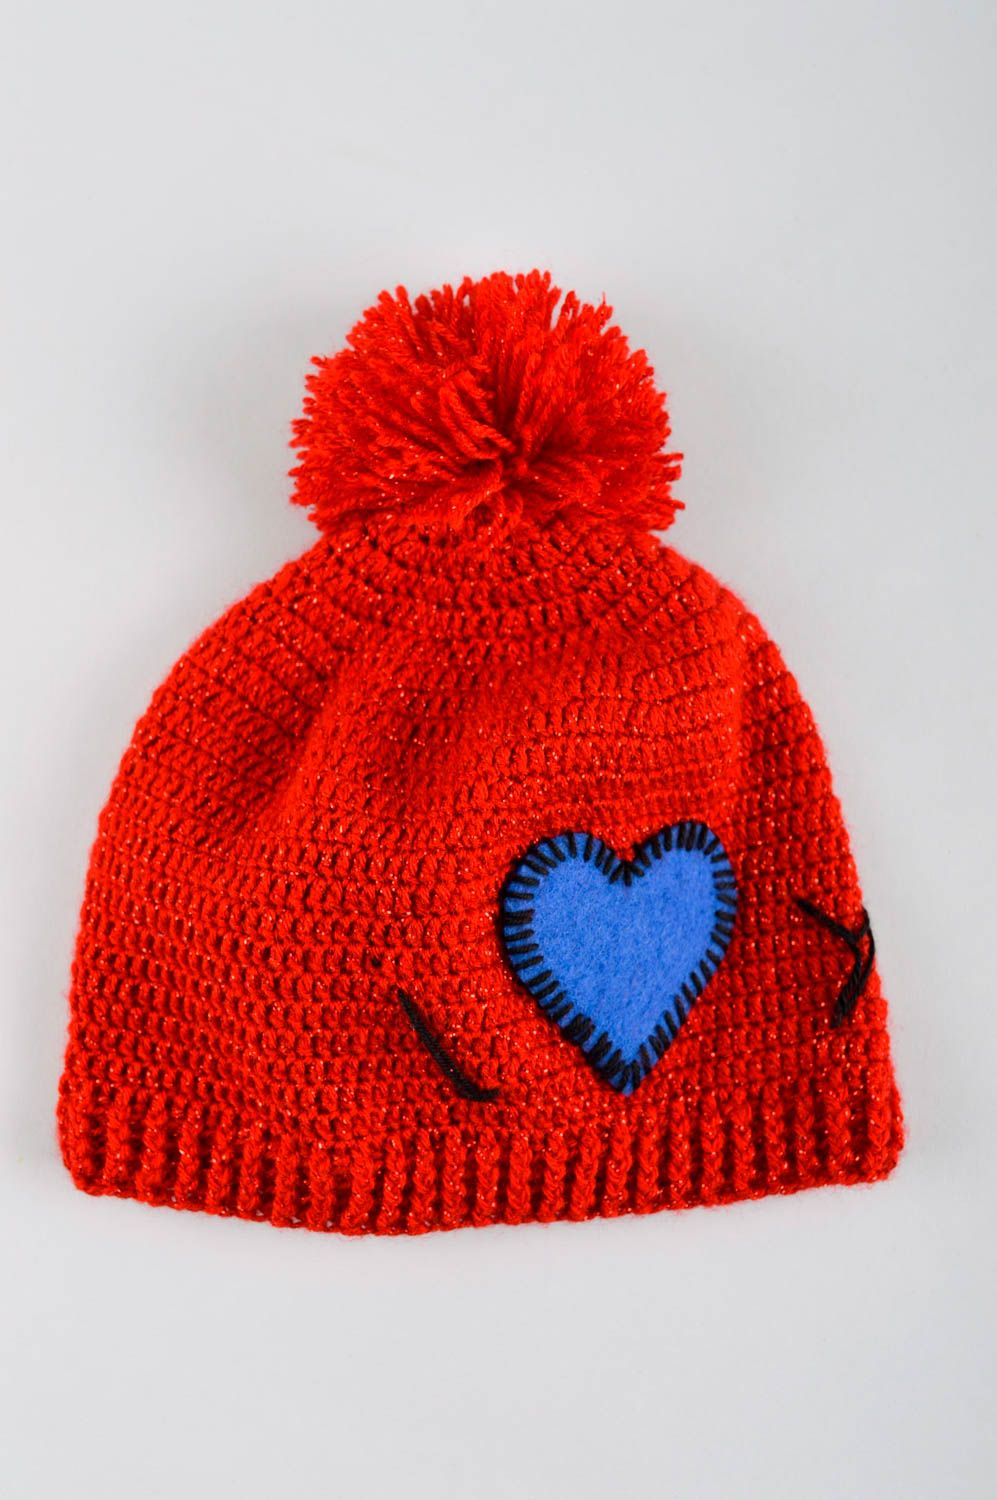 9fb1d7881b1 Handmade winter hat warm hats for kids funny hats kids accessories cool  gifts - MADEheart.